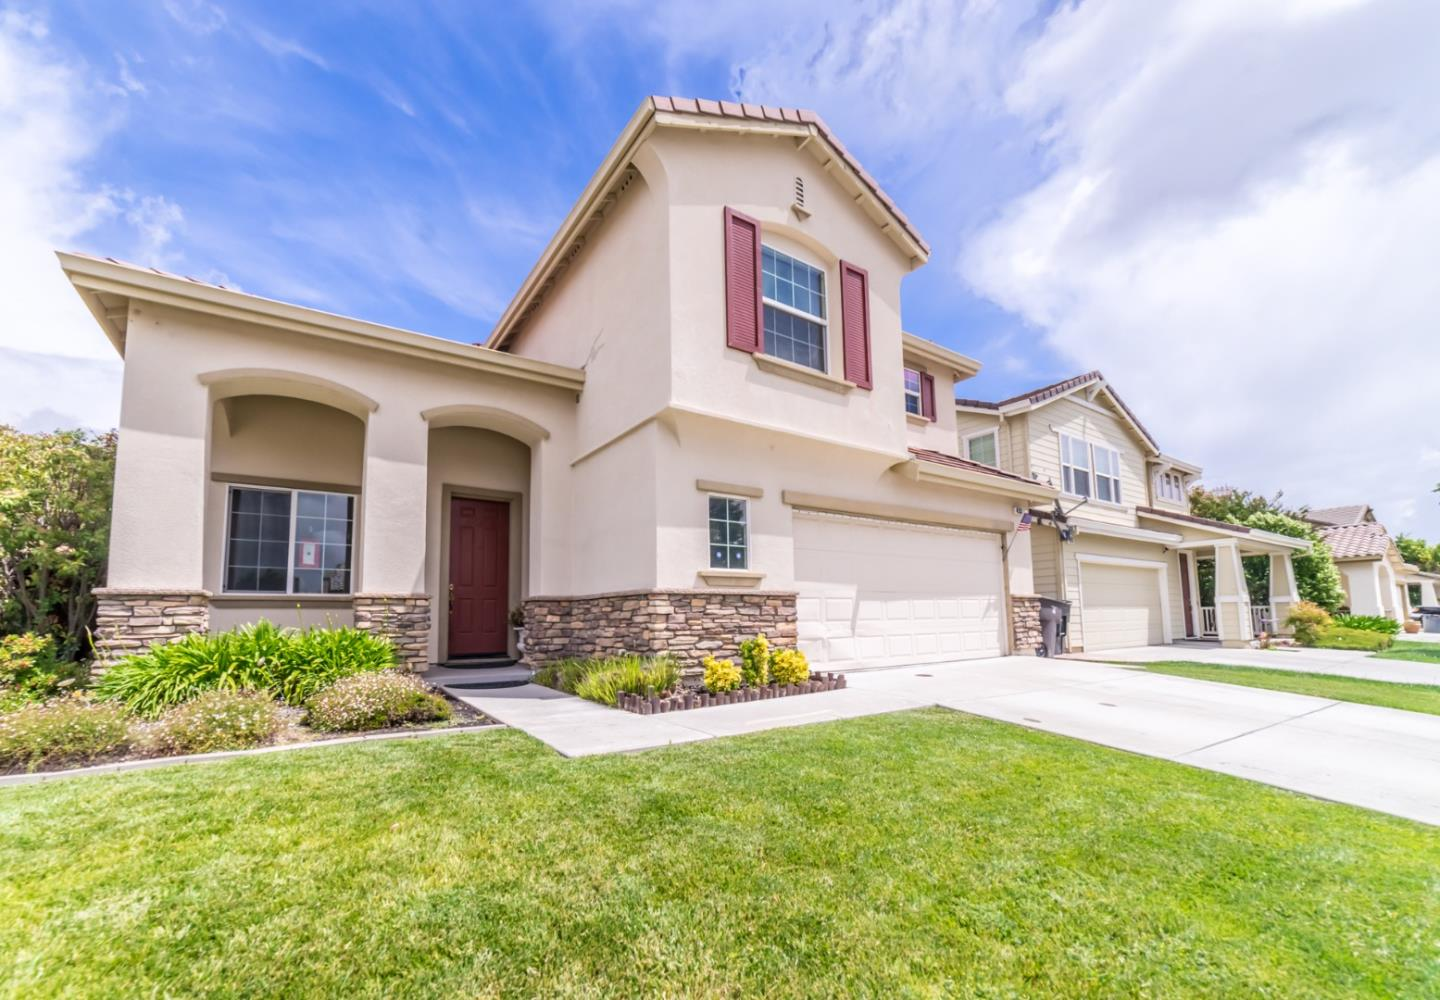 Detail Gallery Image 1 of 1 For 433 Lasata Dr, Tracy, CA, 95377 - 3 Beds | 2/1 Baths